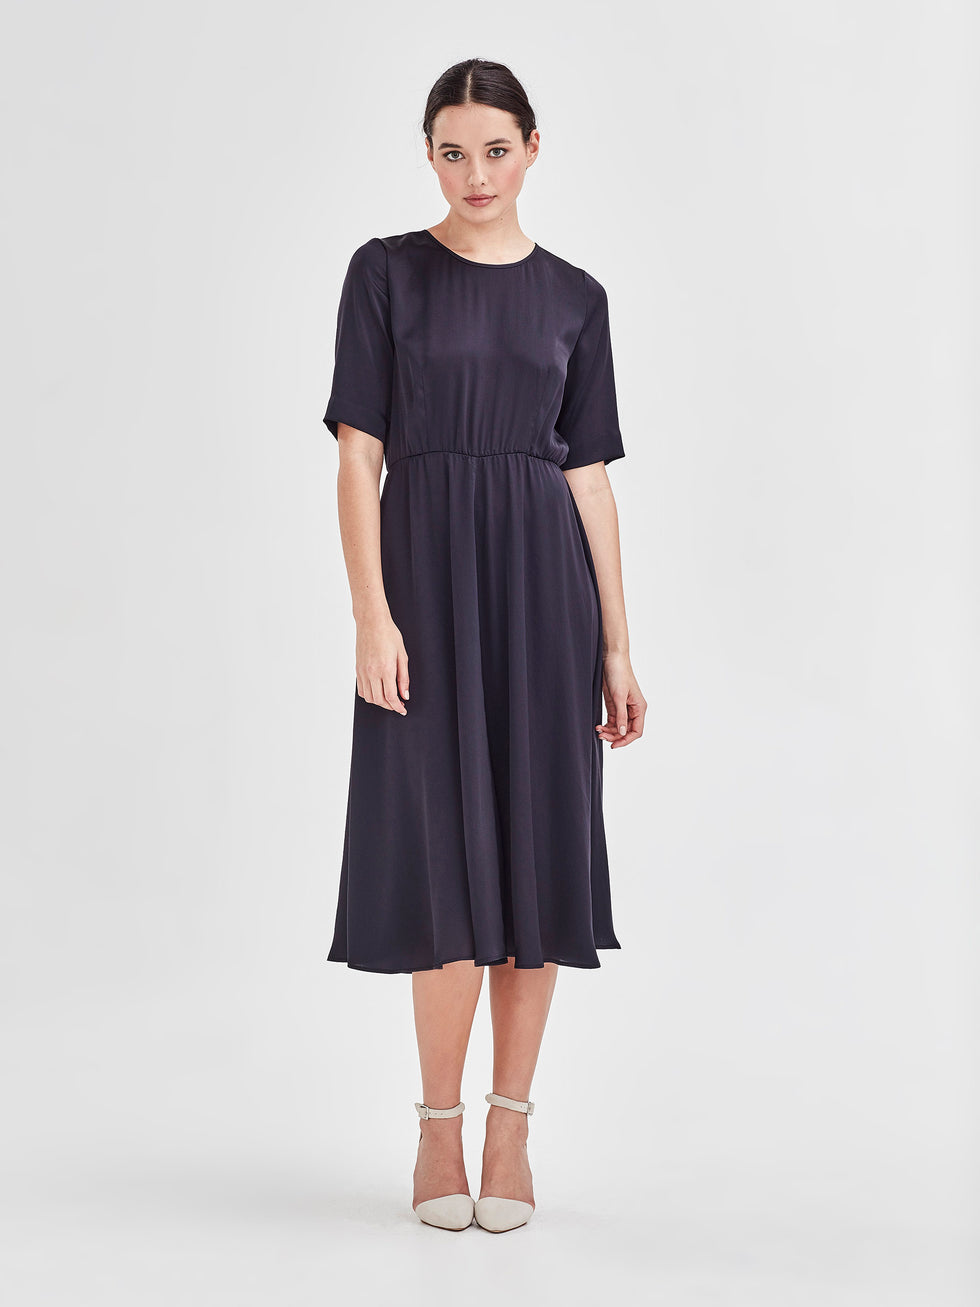 Alba Dress (Satin Triacetate) Smoke 1